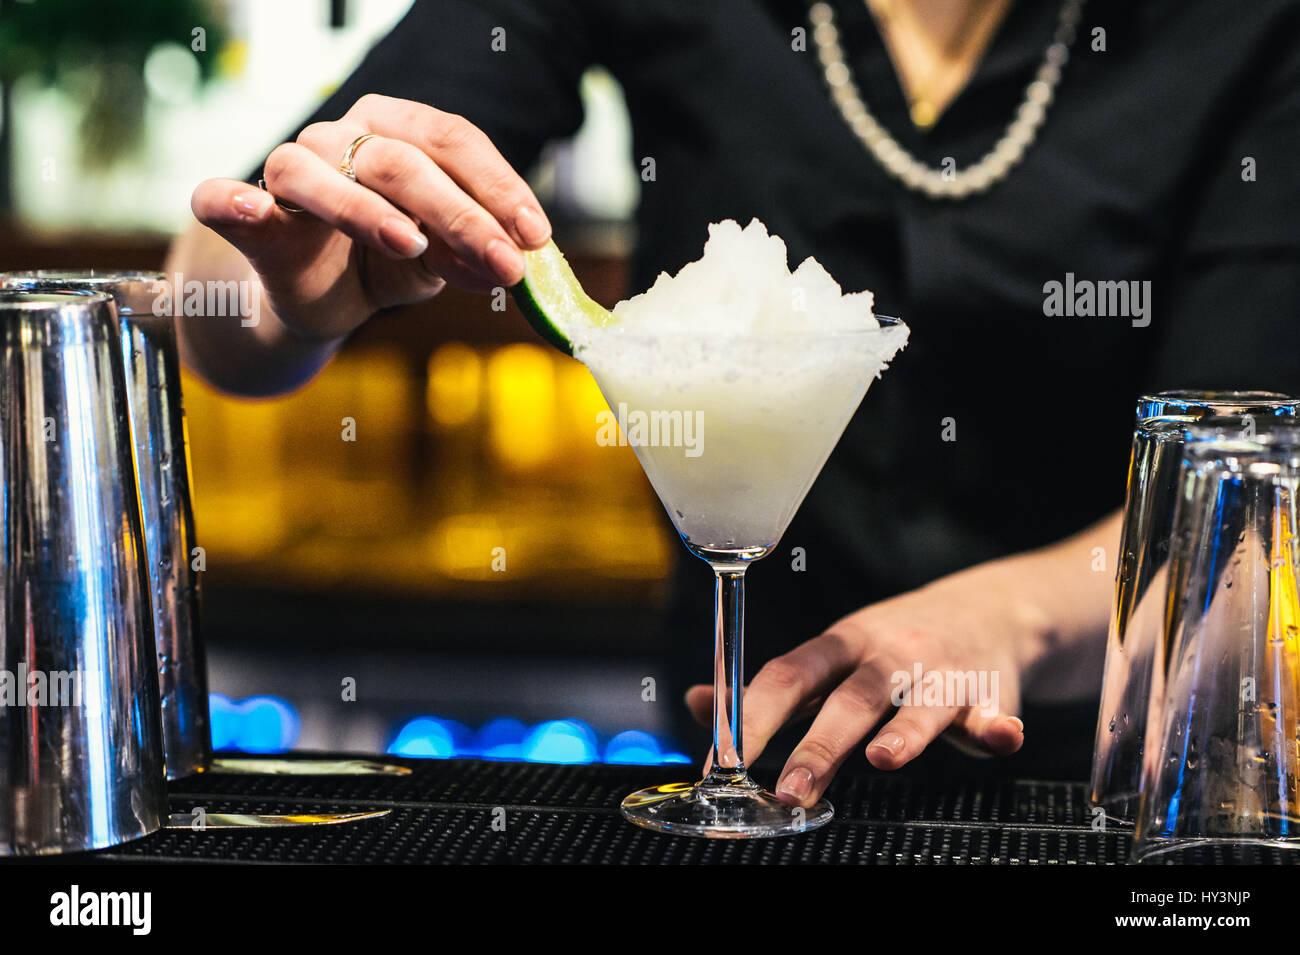 Bartender Preparing a Classic Margarita Cocktail with Crushed Ice - Stock Image